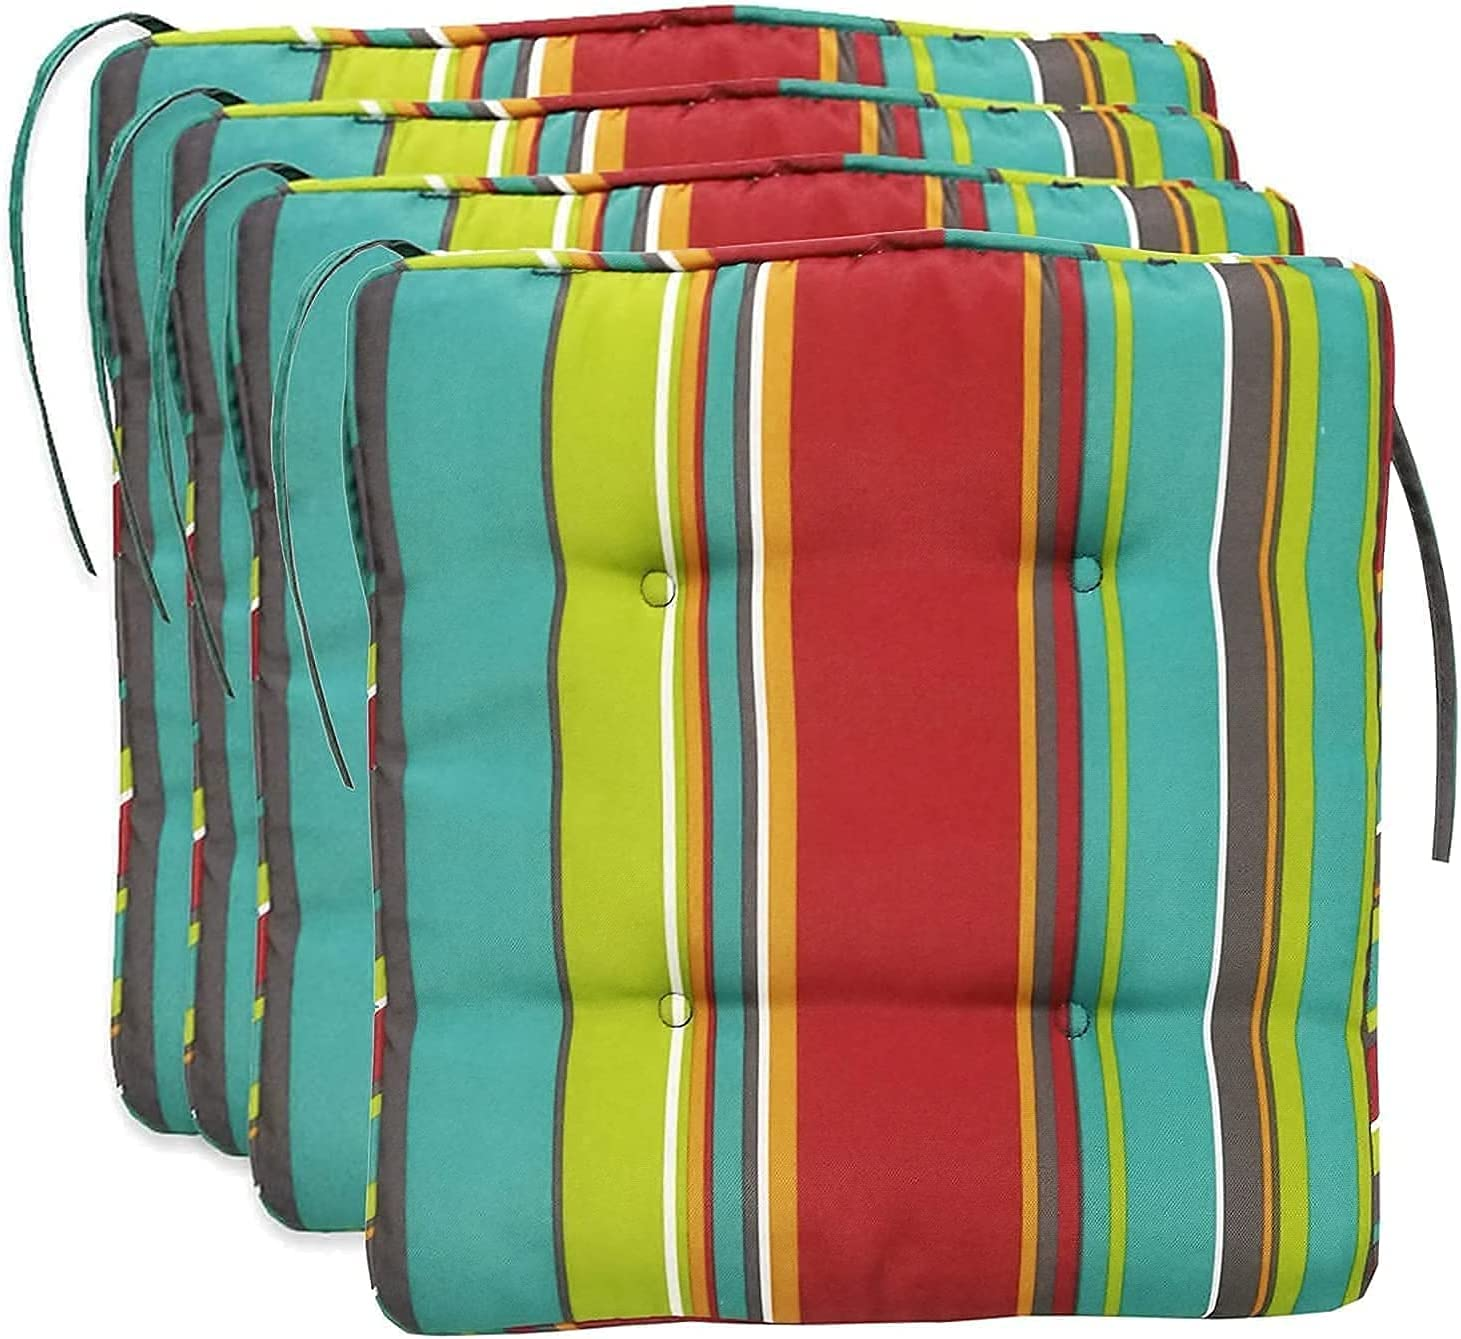 Outdoor New Shipping Fashionable Free Garden Chair Cushions Waterproof Seat Dining for Kitchen